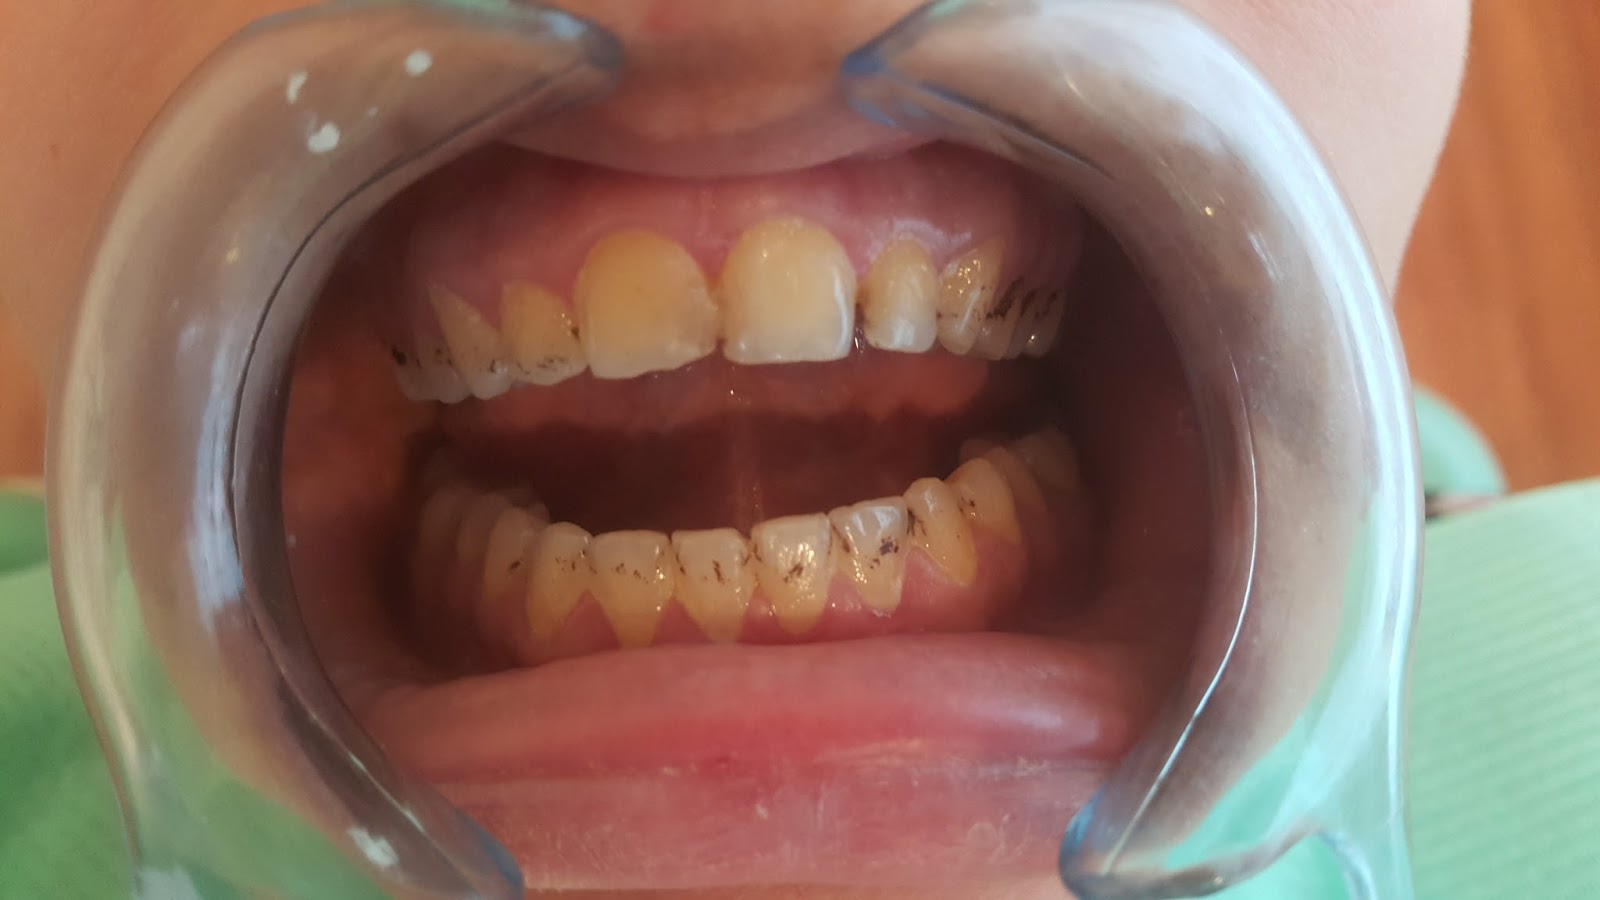 Tooth Staining and Discoloration: a review of literature ...